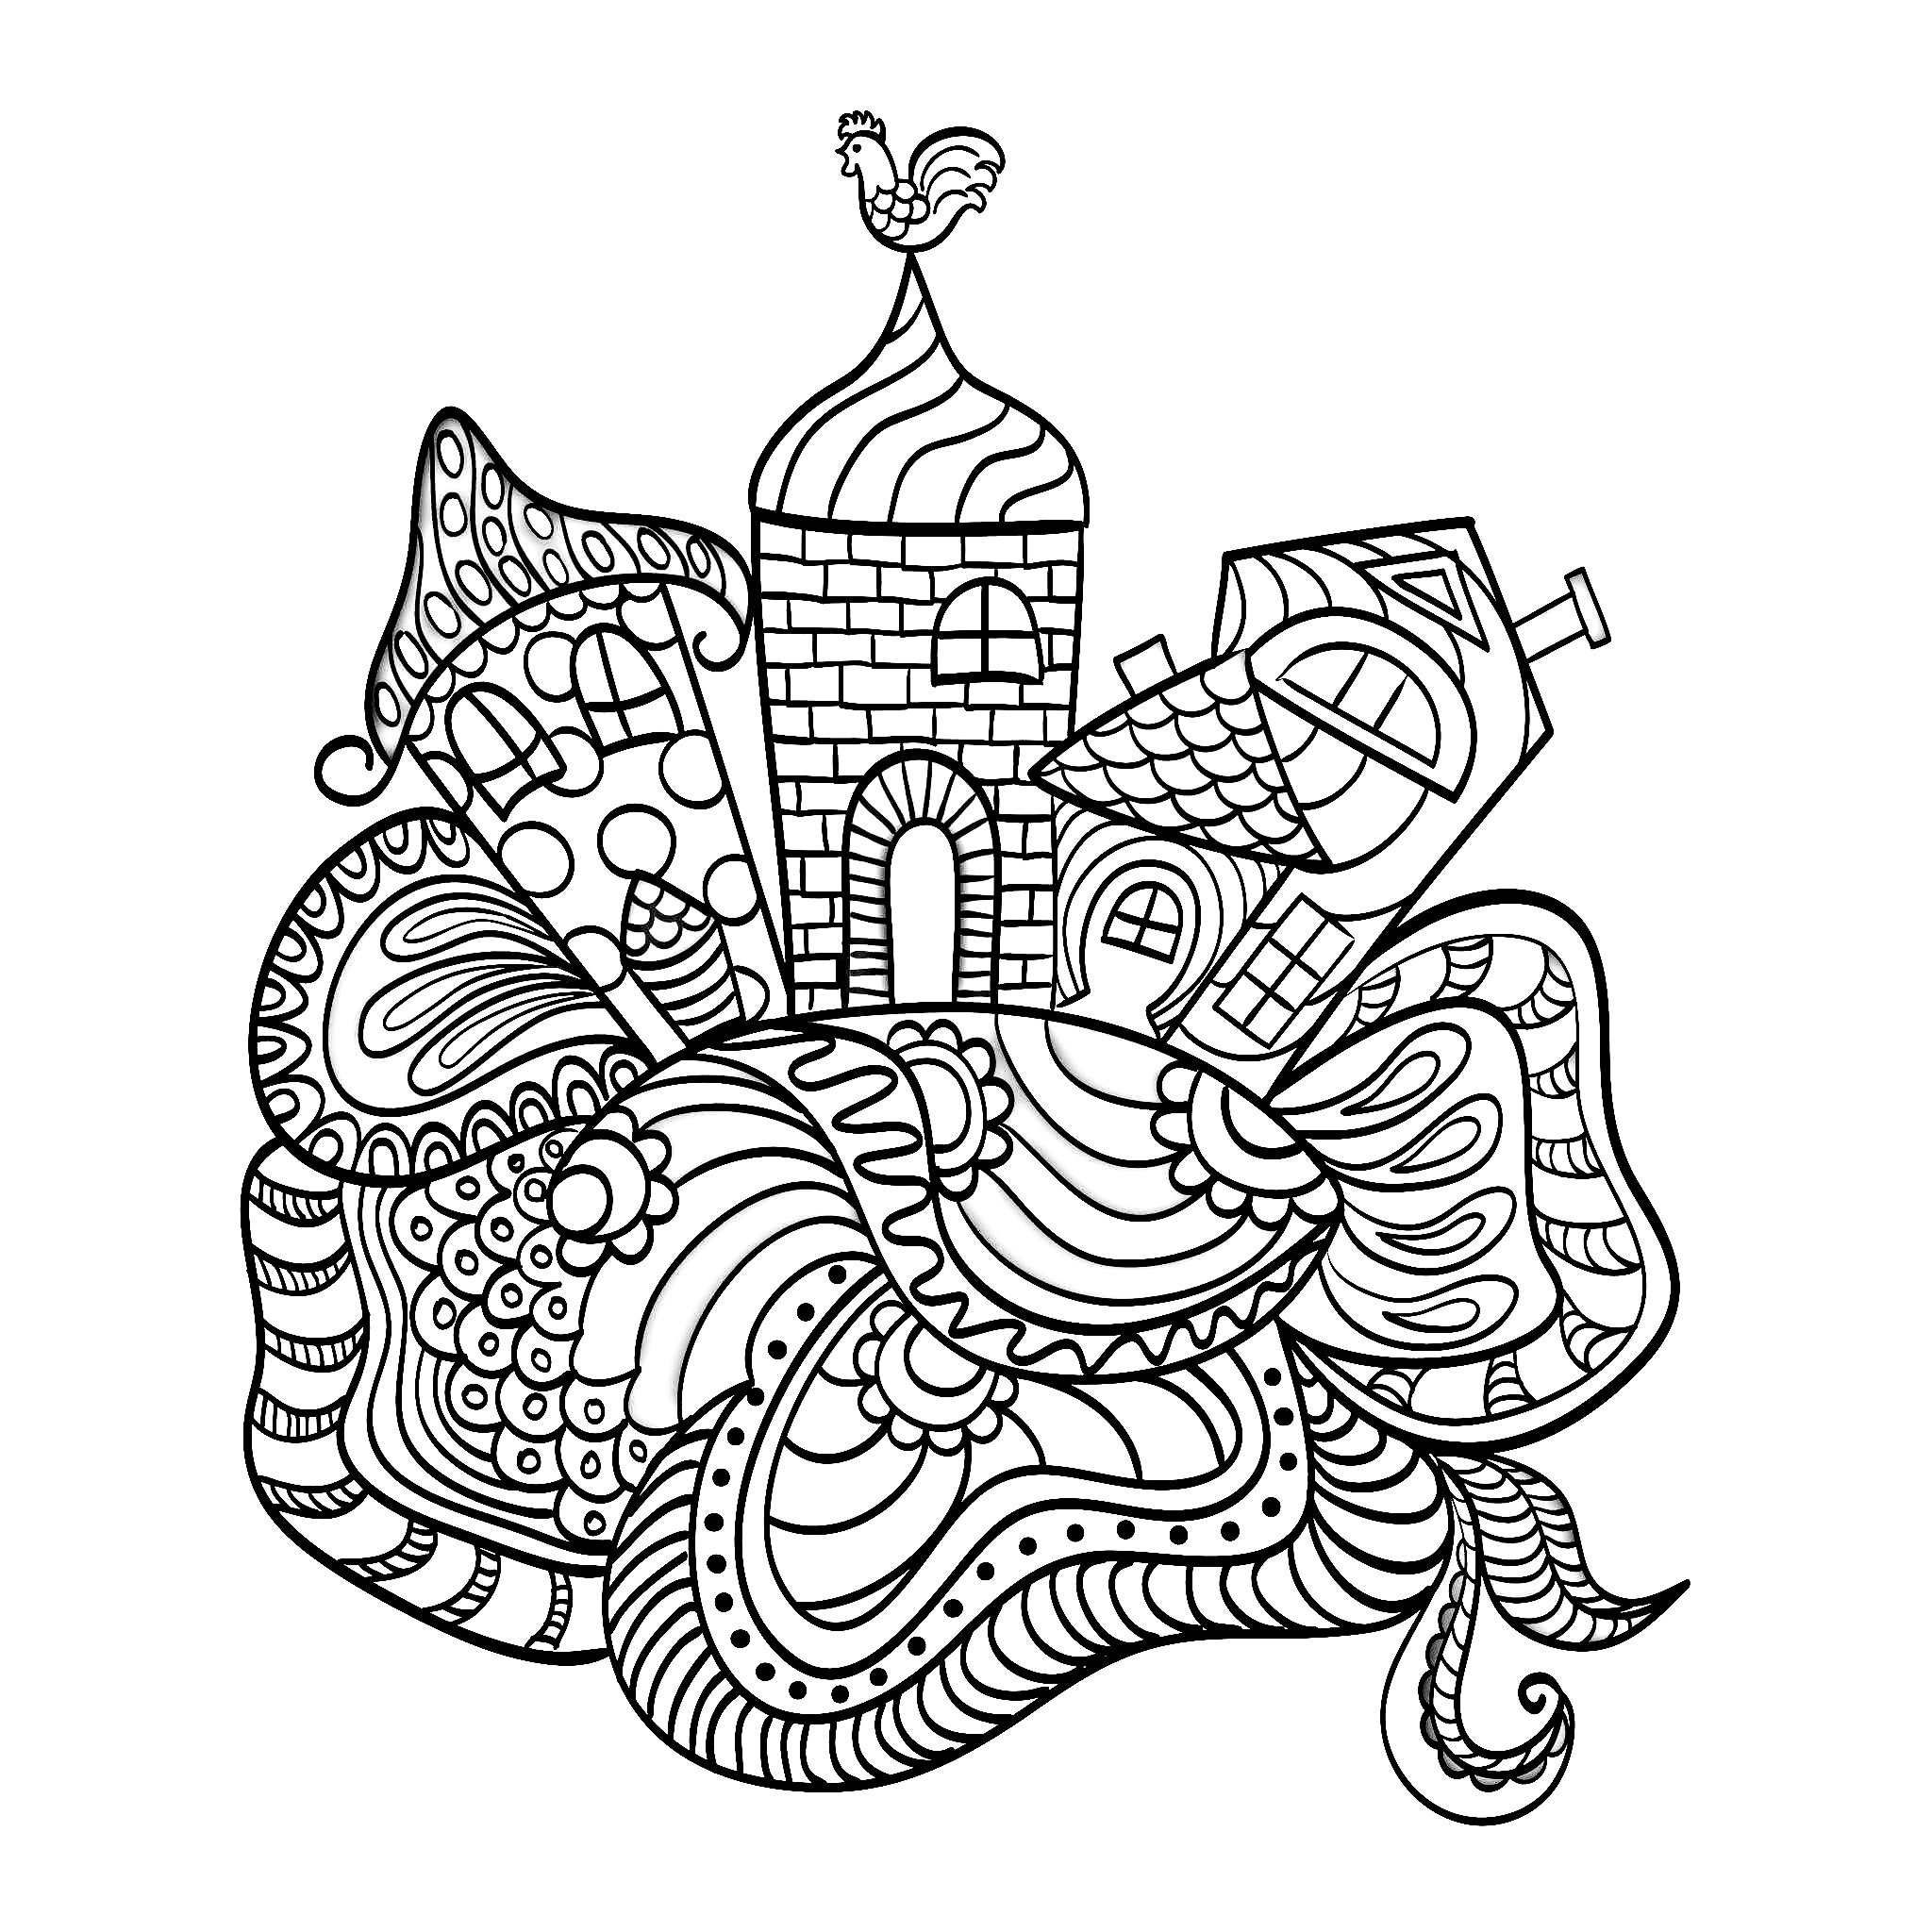 pictures of houses to color free printable house coloring pages for kids houses of color to pictures